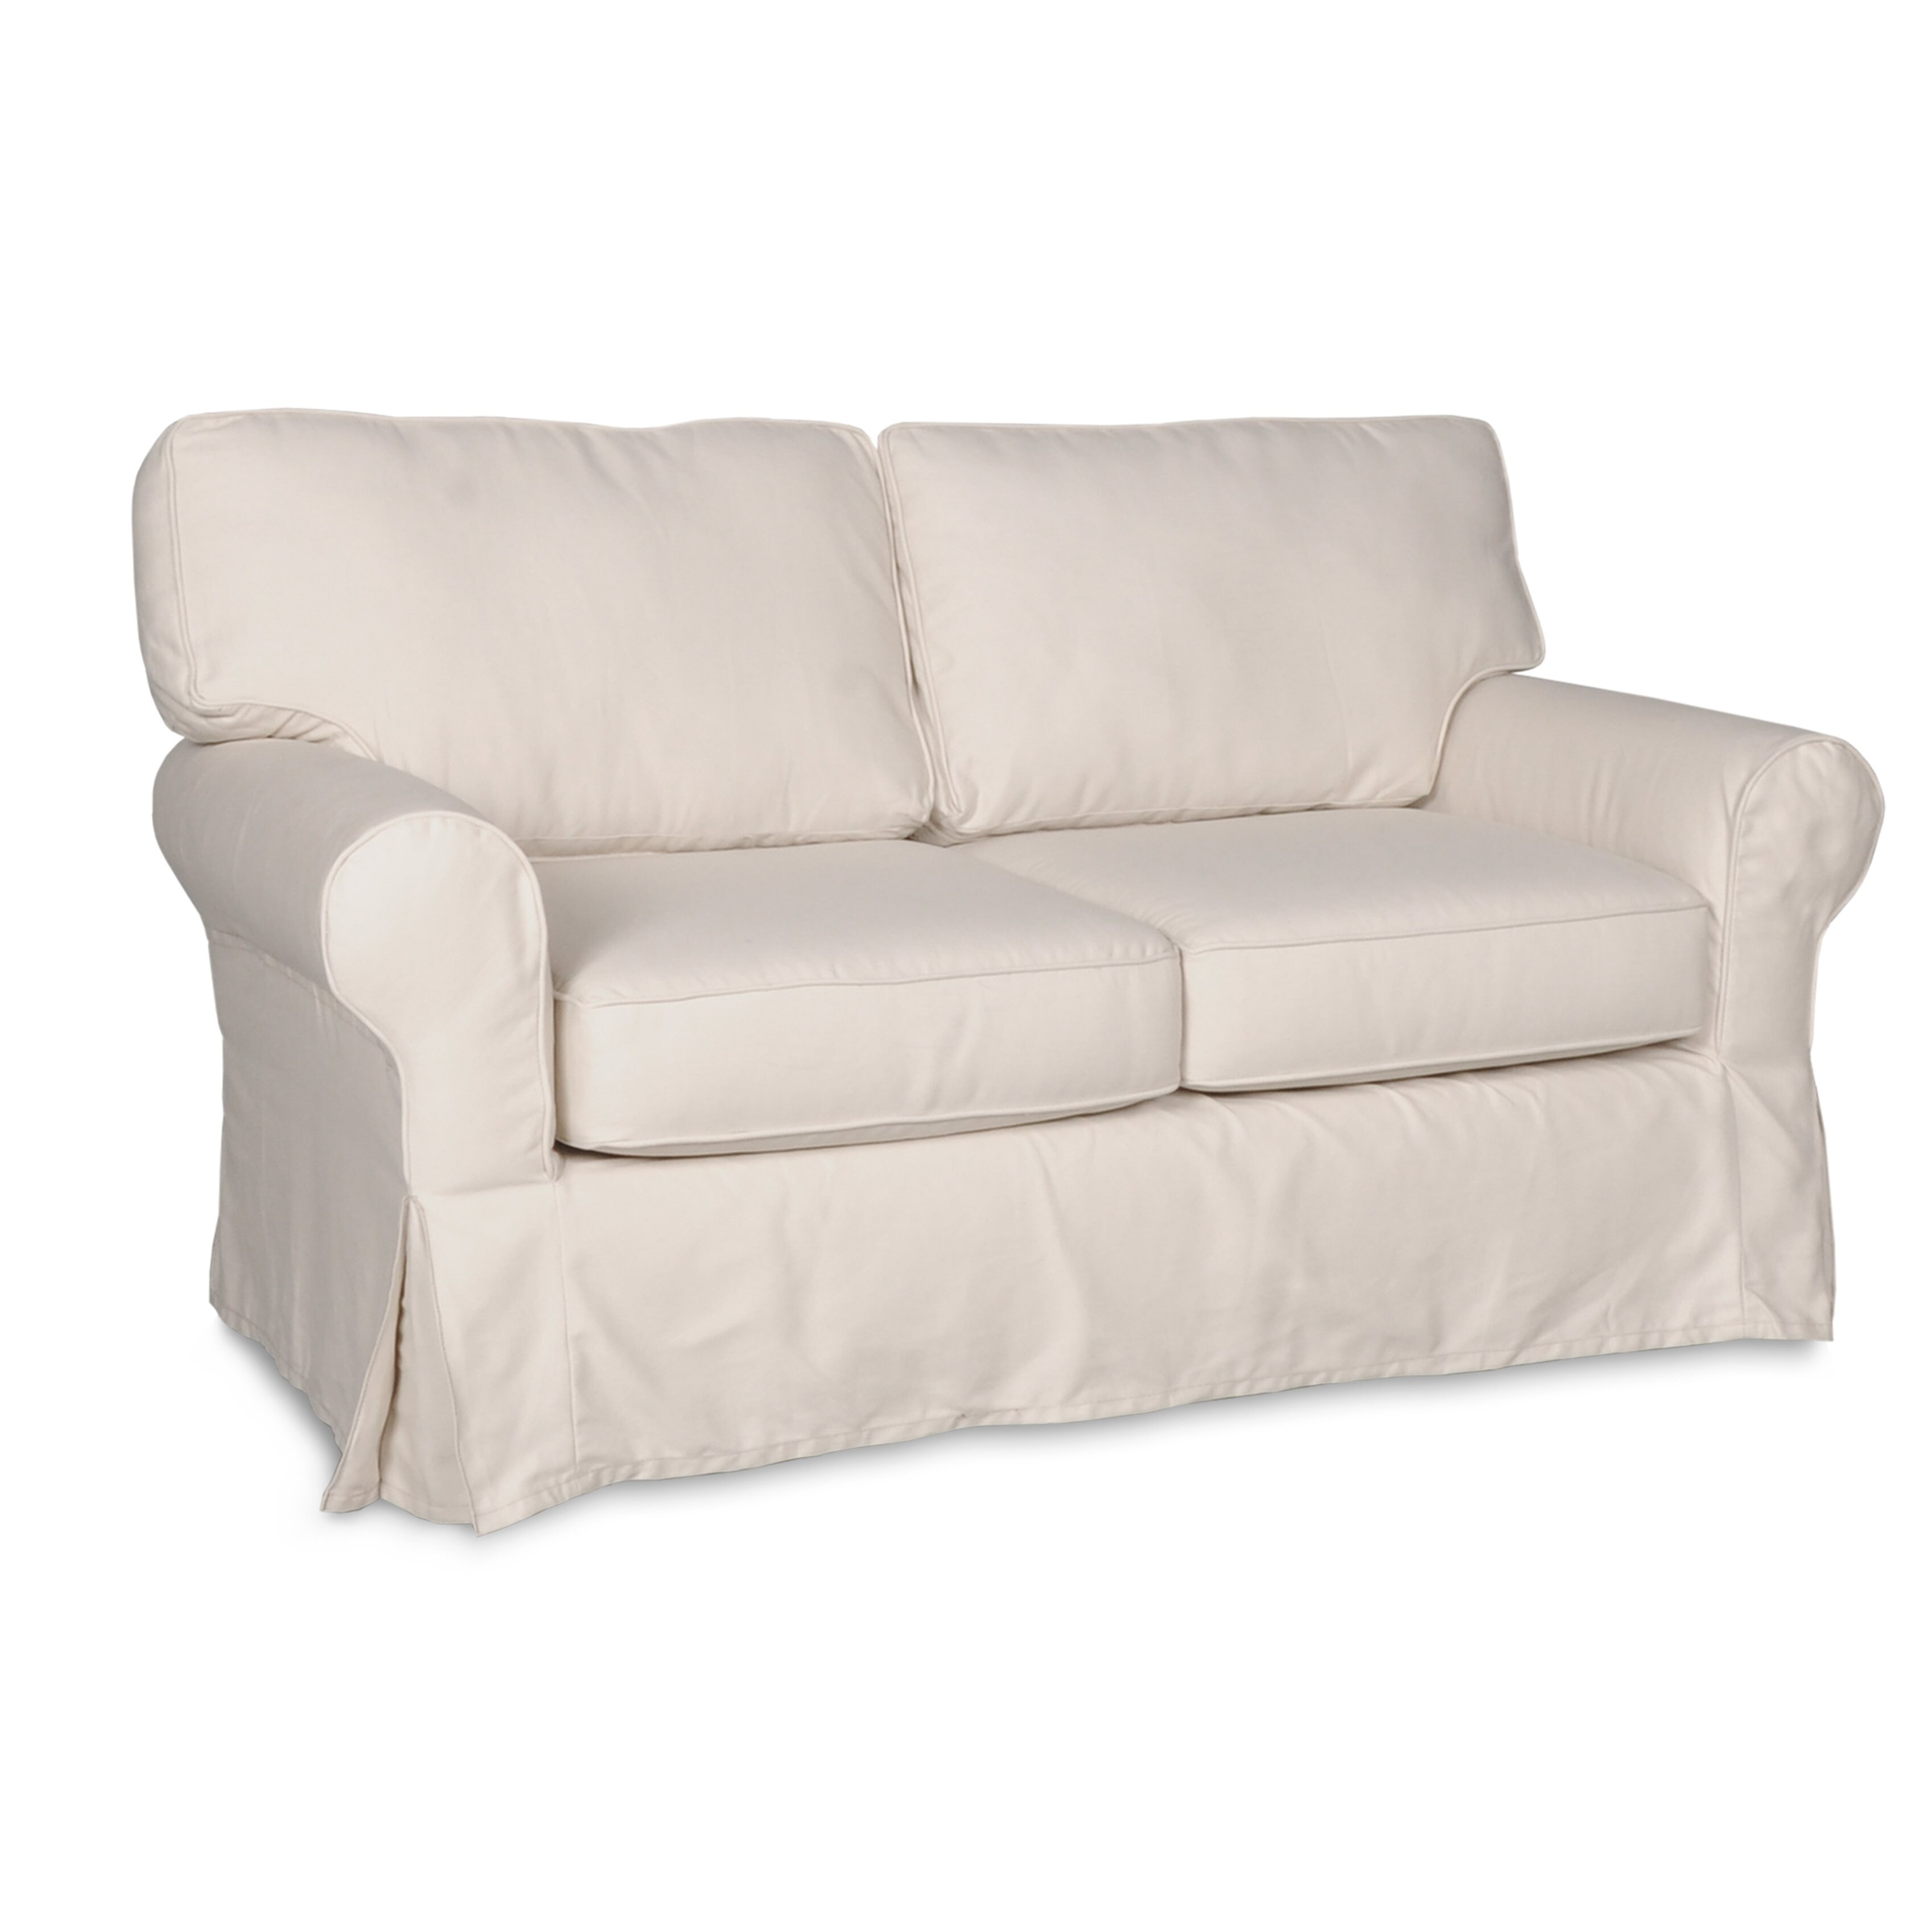 Darby home co loveseat slipcover reviews wayfair Loveseat slipcover